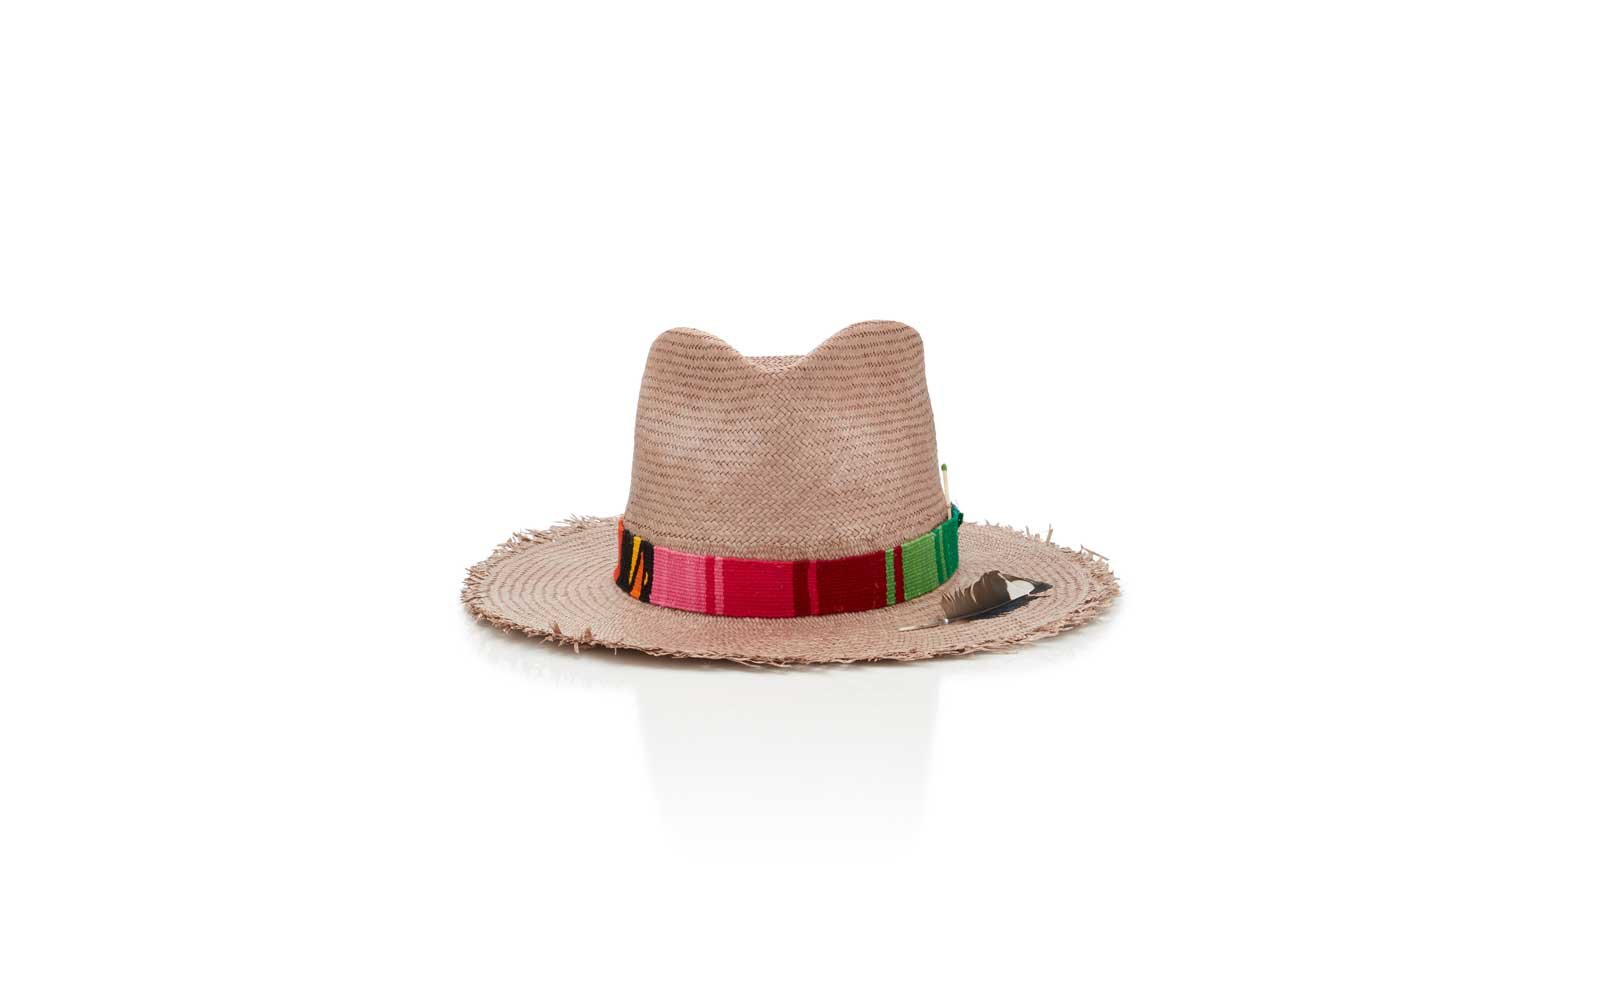 Santa Fe Nick Fouquet Straw Hat